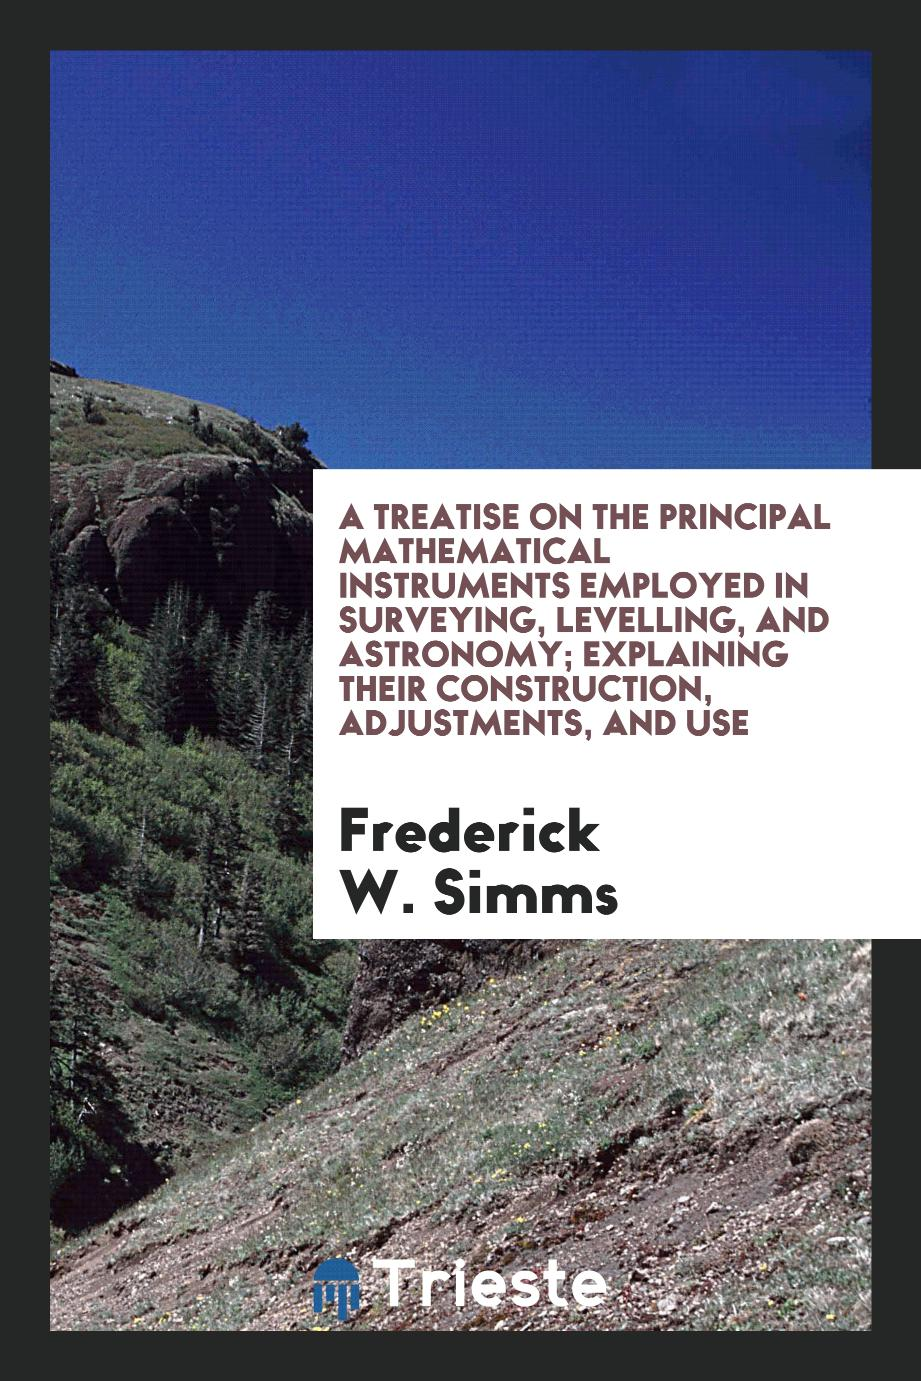 A Treatise on the Principal Mathematical Instruments Employed in Surveying, Levelling, and Astronomy; Explaining Their Construction, Adjustments, and Use